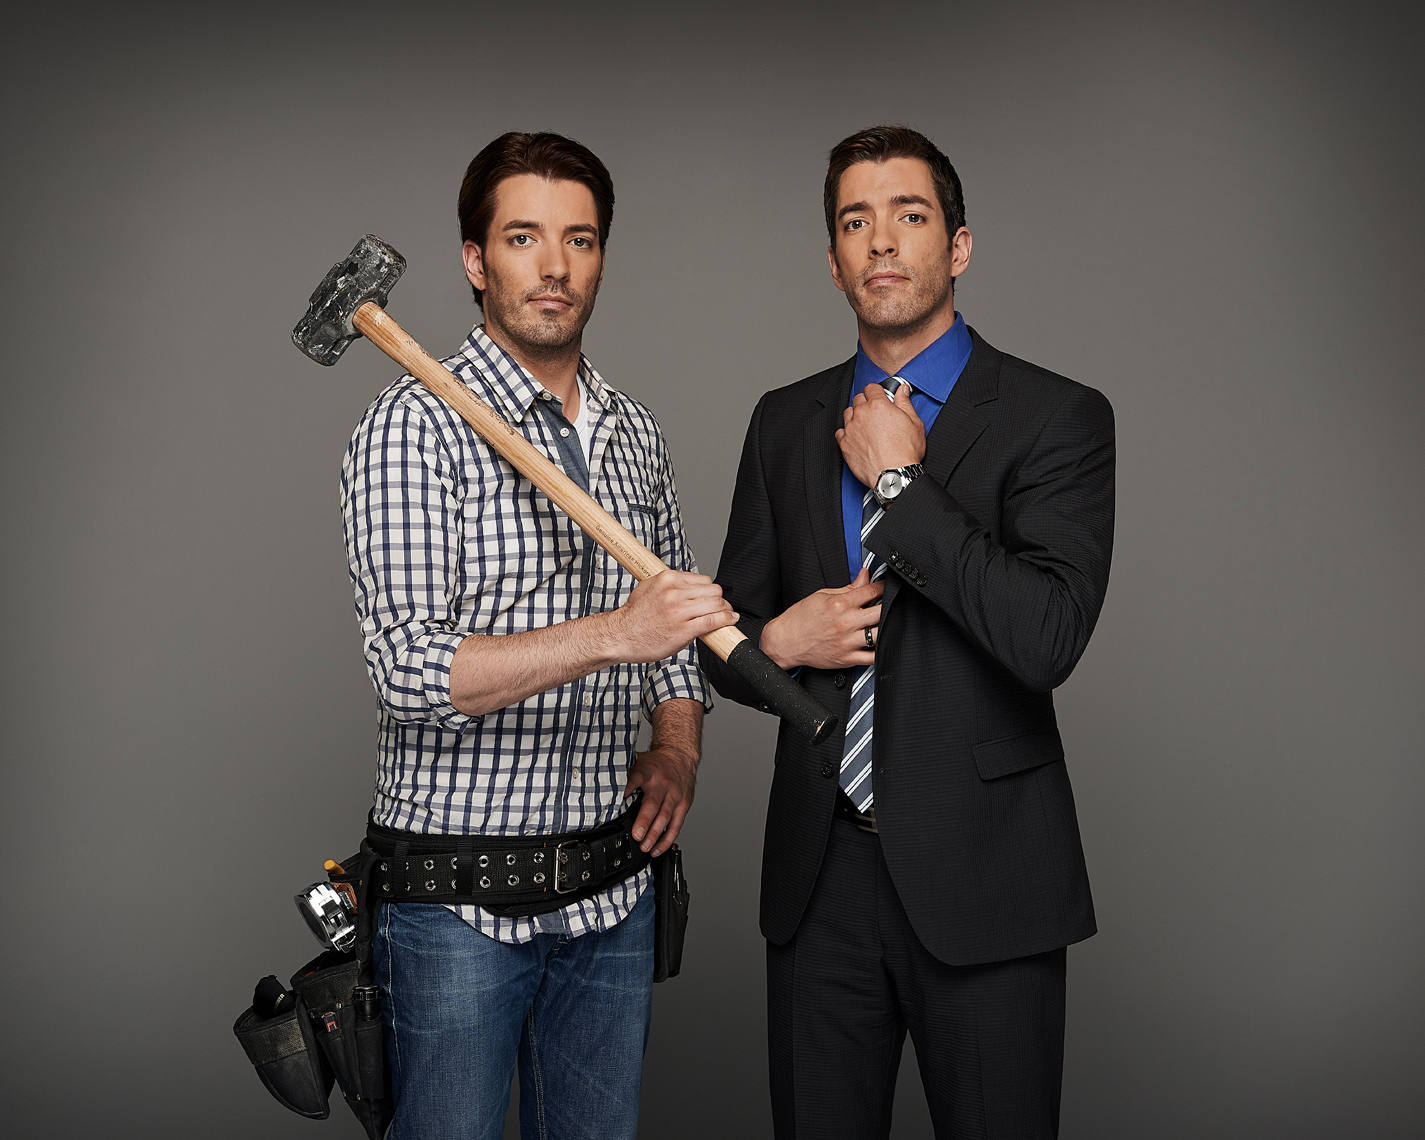 2017-Vancouver-Celebrity-Photographer-ErichSaide-TVShow-PropertyBrothers-HGTV